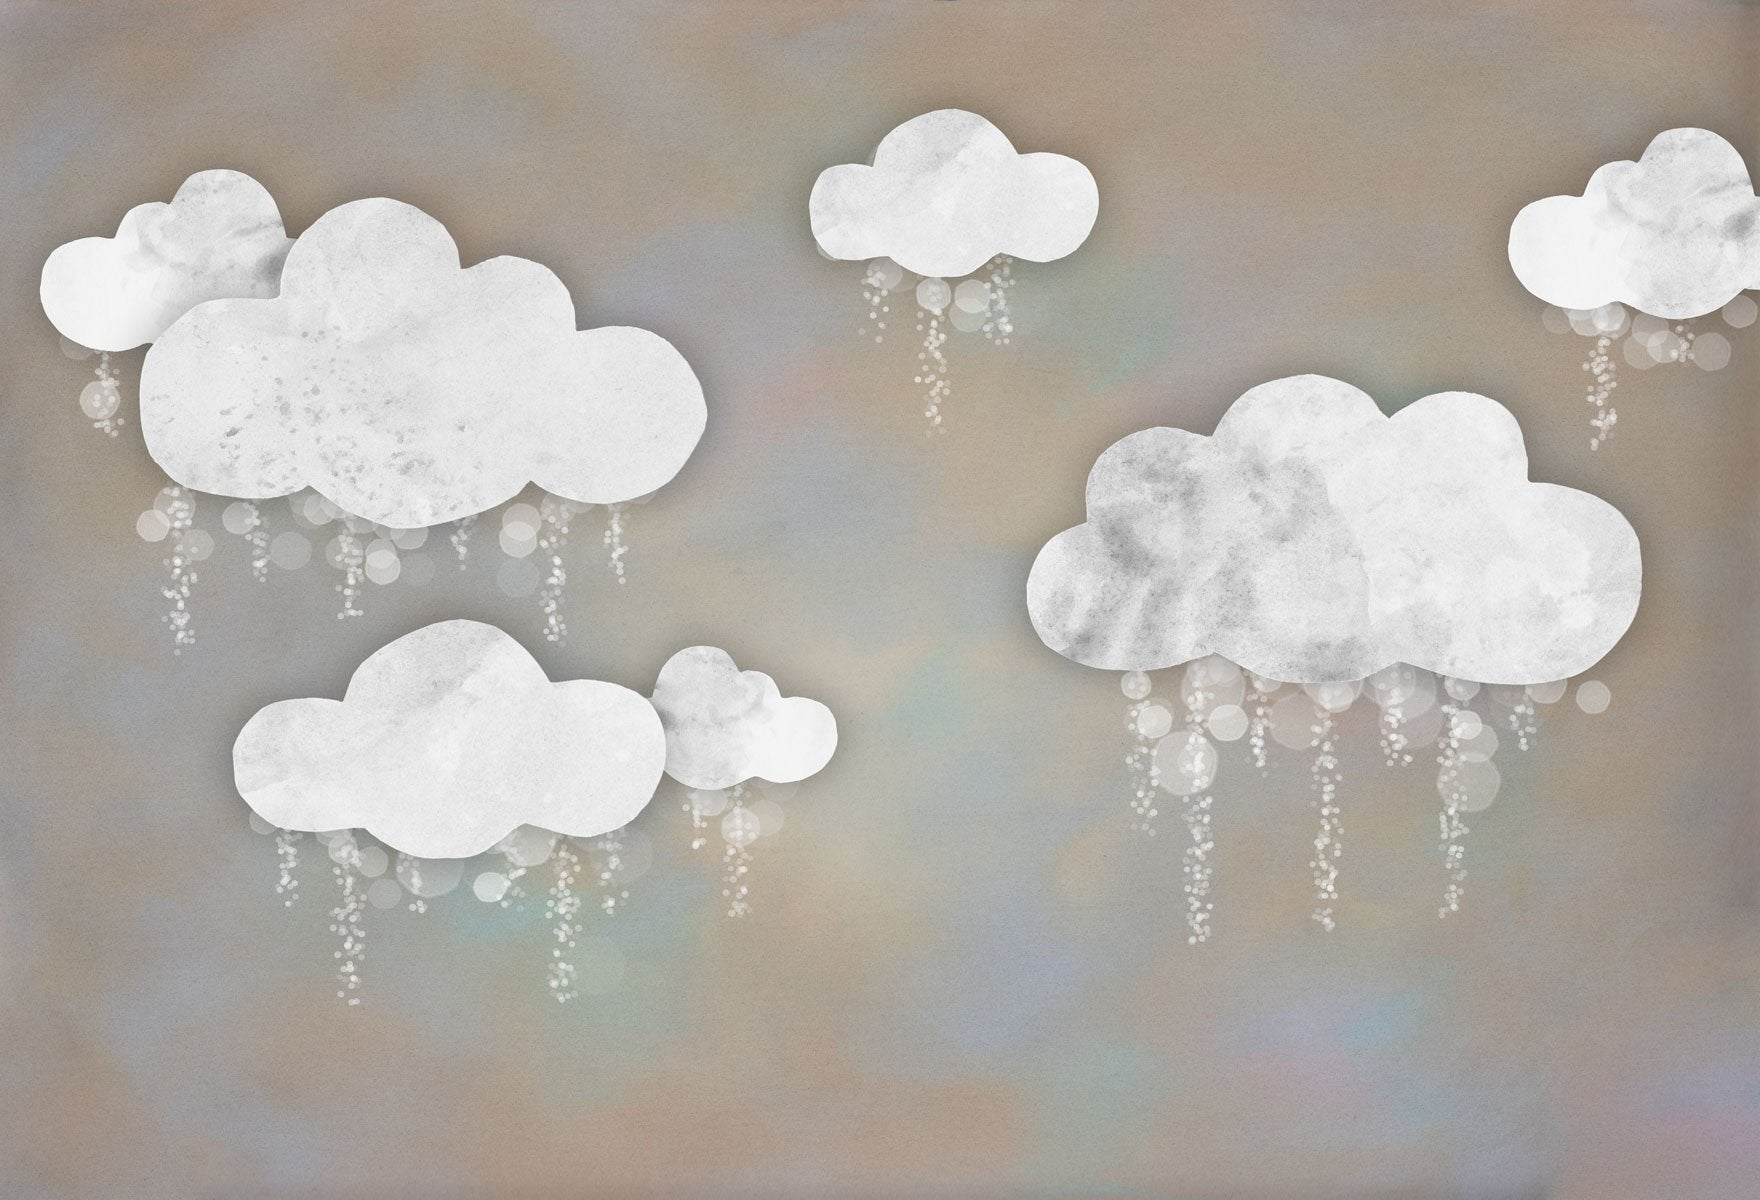 Load image into Gallery viewer, Kate Baby Shower Take Flight Winter Clouds Backdrop for Photography Designed by Mini MakeBelieve - Kate backdrops UK